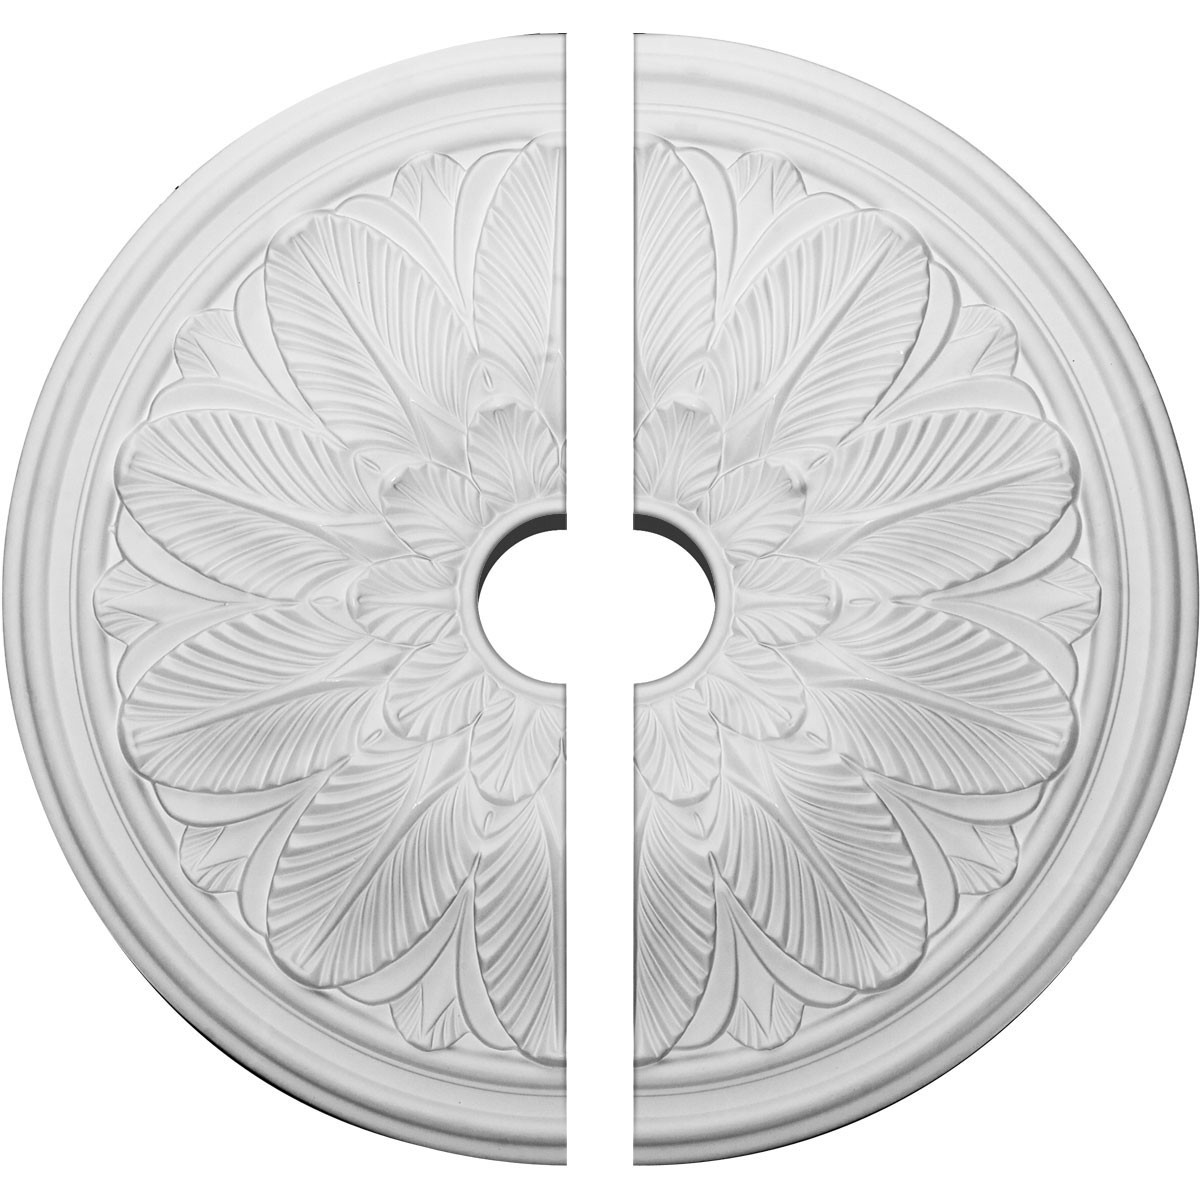 """EM-CM22BO2-03500 - 22 5/8""""OD x 3 1/2""""ID x 1 3/4""""P Bordeaux Ceiling Medallion, Two Piece (Fits Canopies up to 3 1/2"""")"""